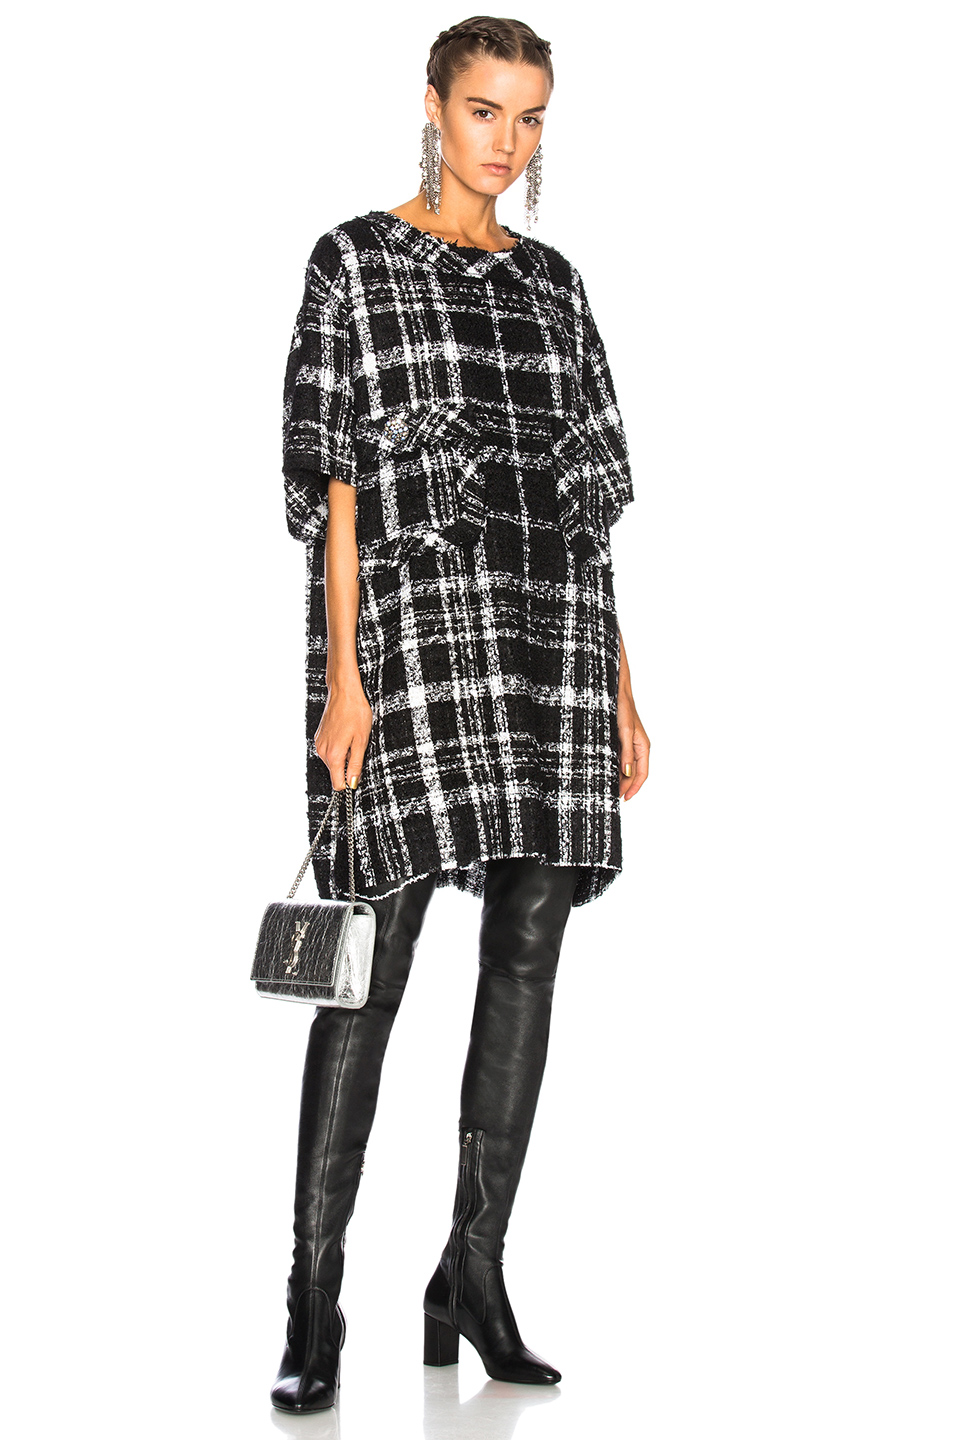 Faith Connexion Oversize Dress in Black,Checkered & Plaid